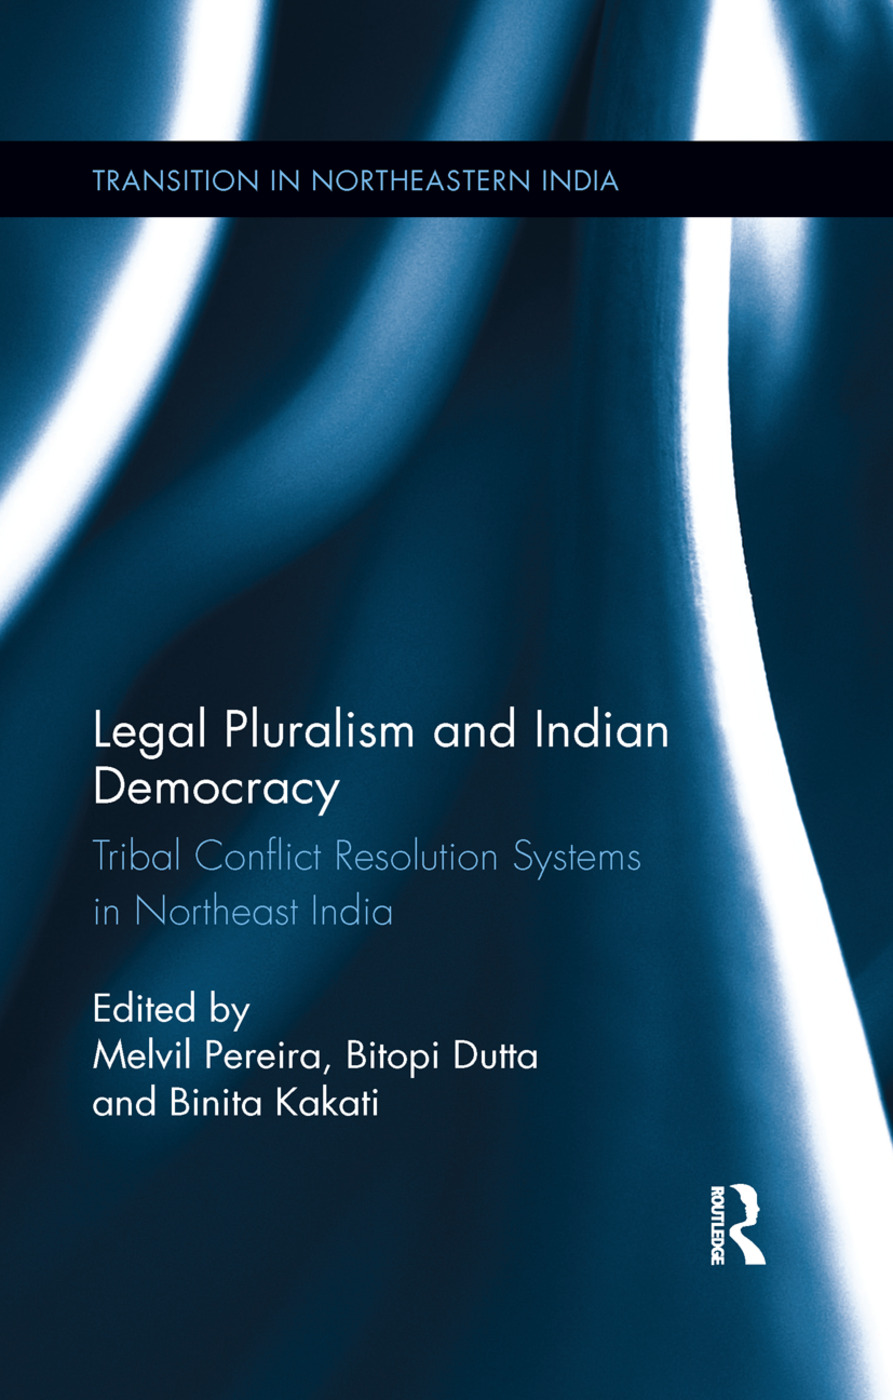 Legal Pluralism and Indian Democracy: Tribal Conflict Resolution Systems in Northeast India book cover